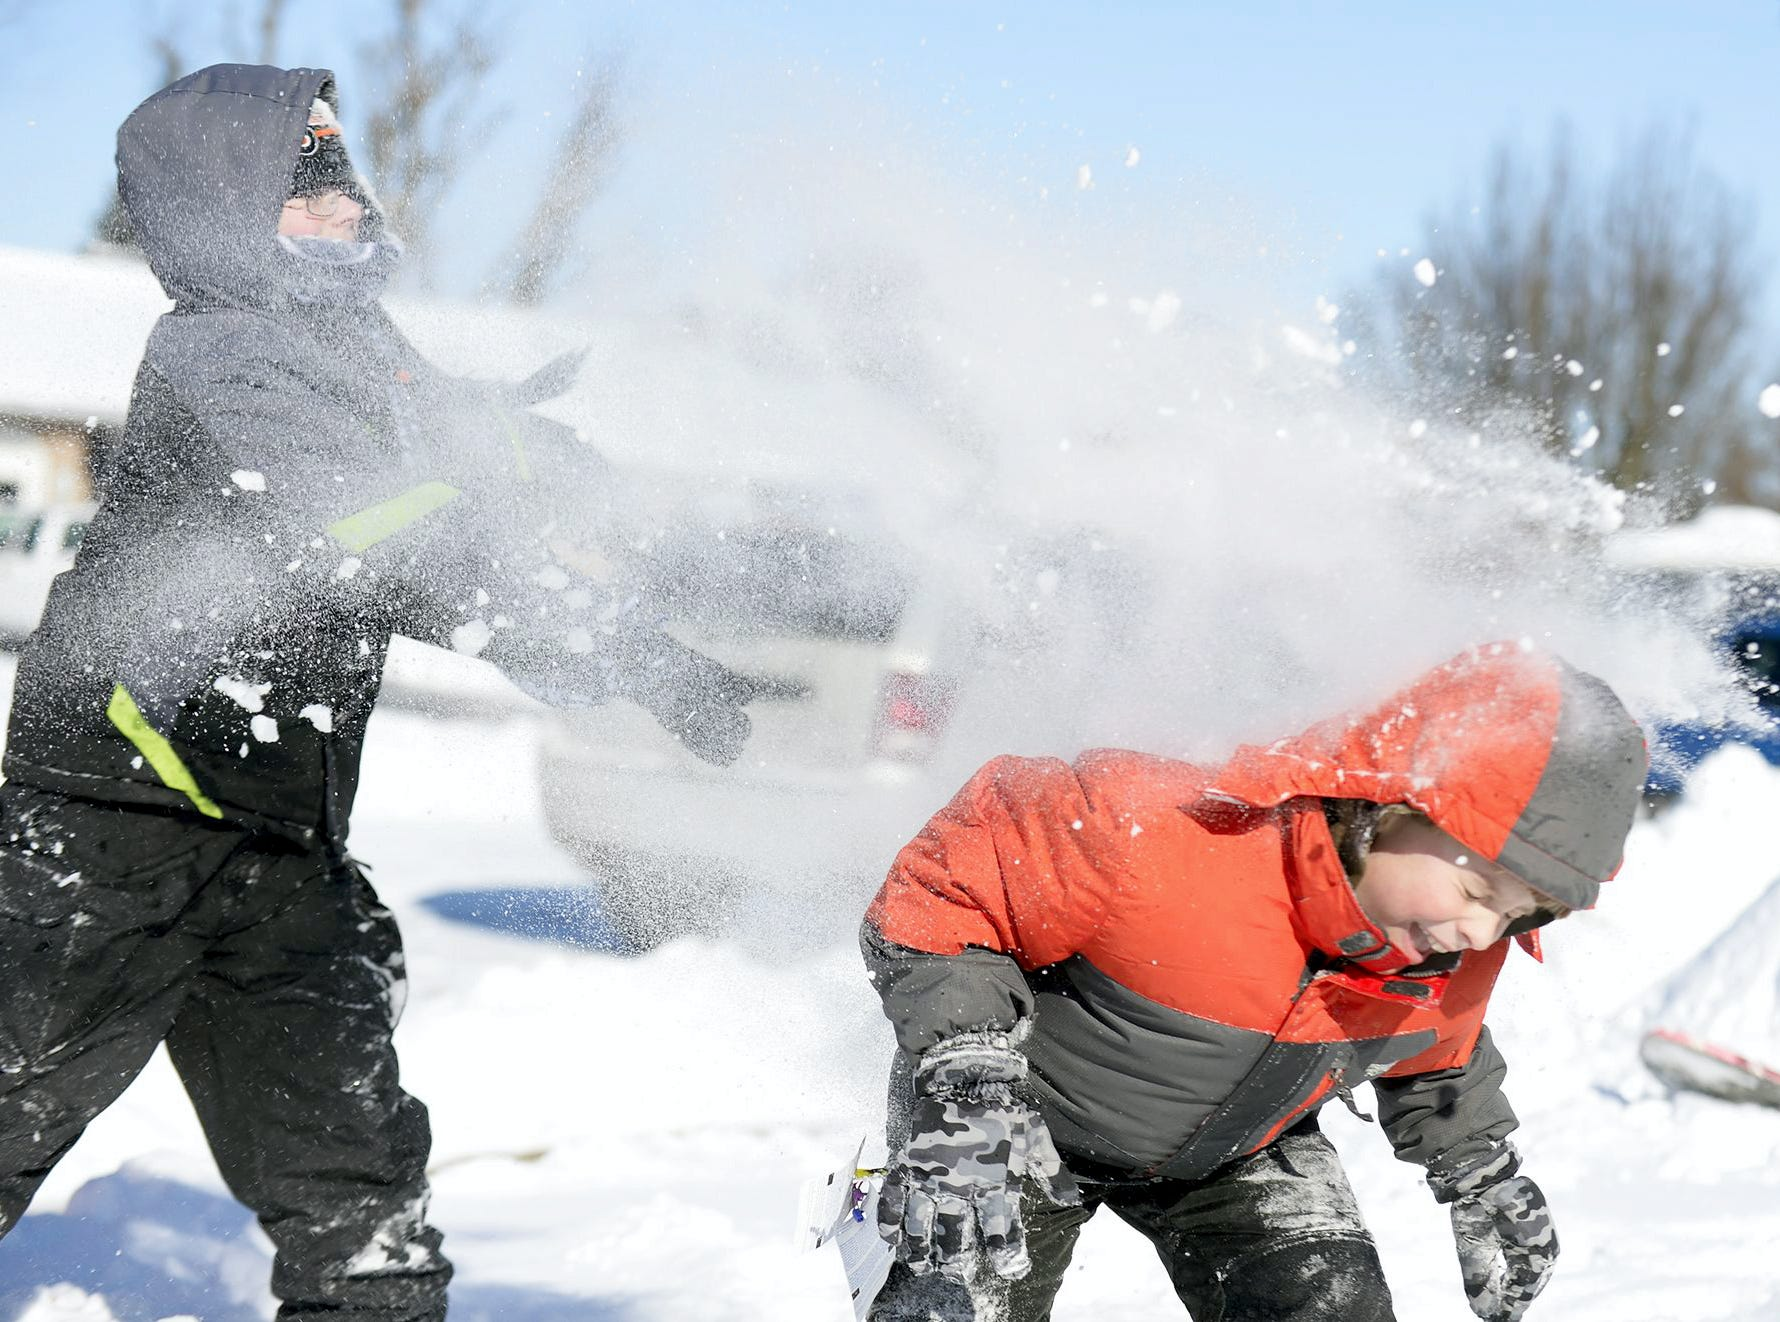 Owen Lindsay, 11, and his brother, Joshua, 8, have a snowball battle outside of their home in Cleona Borough, Pennsylvania on Friday, Jan. 3, 2014. The Lebanon Valley was hit with a snow storm Jan.2-3 and on Jan. 3 cold temps and high winds remained.